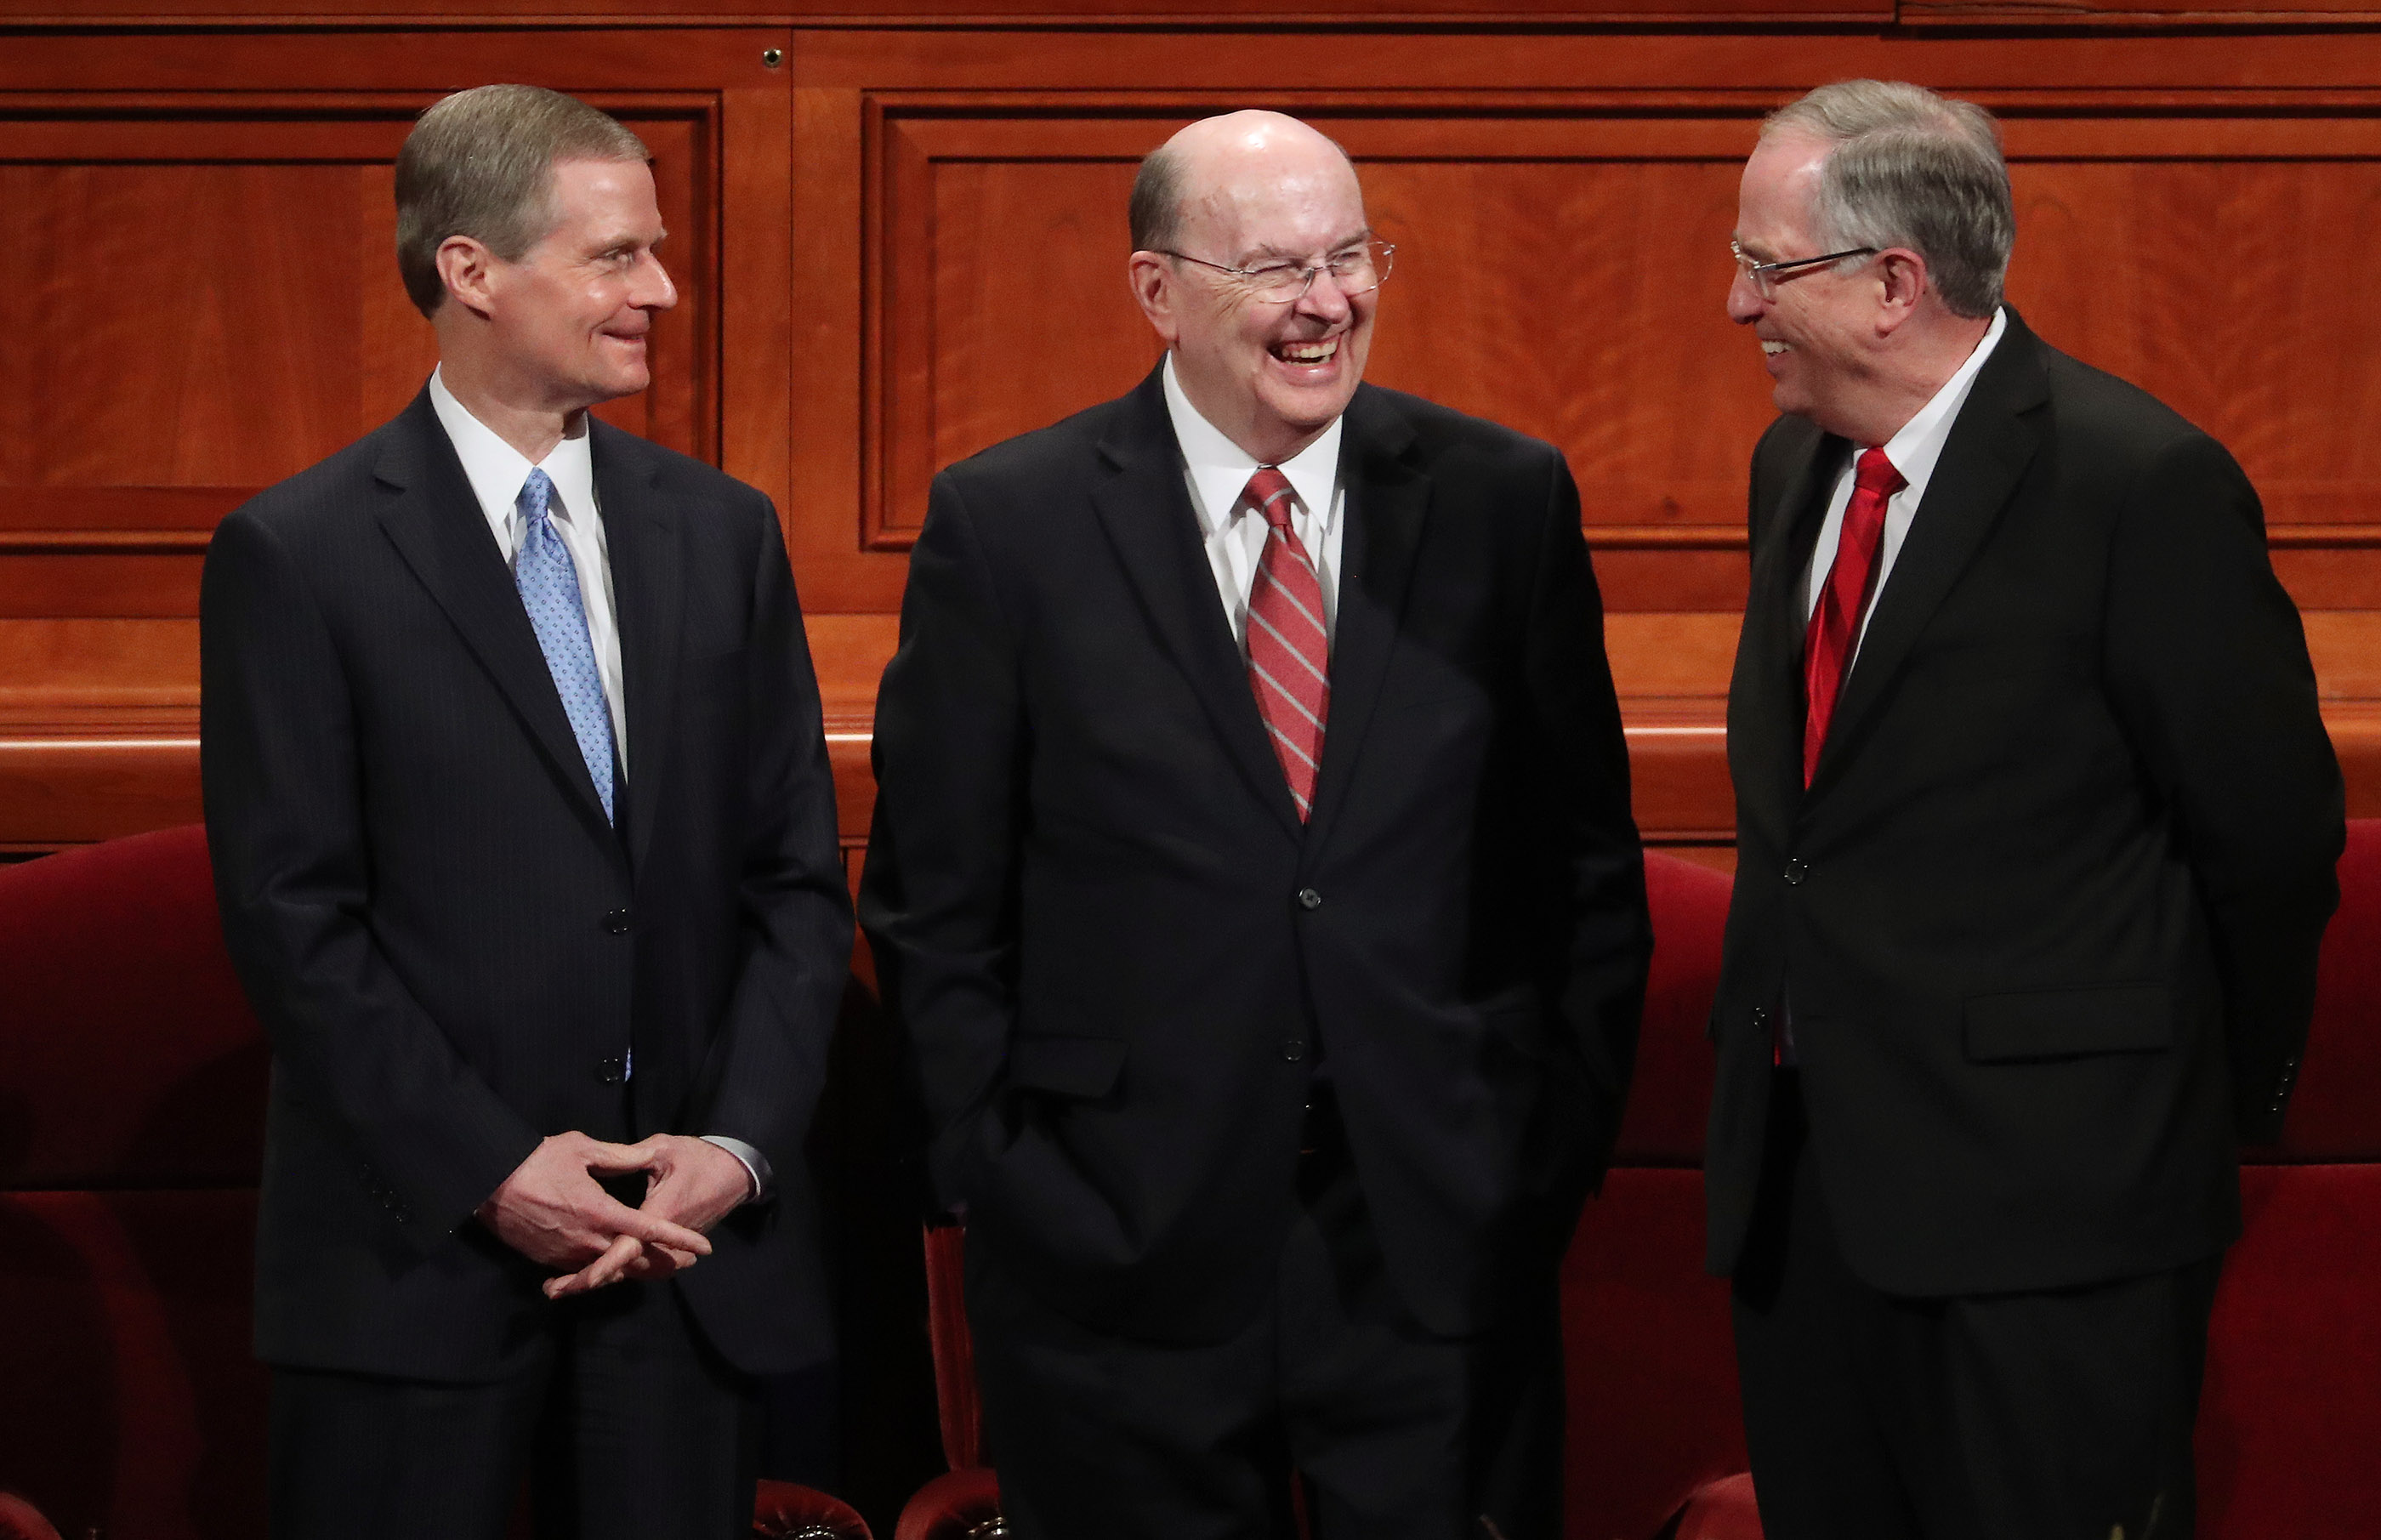 Elder David A. Bednar, Elder Quentin L. Cook and Elder Neil L. Andersen of The Church of Jesus Christ of Latter-day Saints' Quorum of the Twelve Apostles speak prior to the 189th Annual General Conference of The Church of Jesus Christ of Latter-day Saints in Salt Lake City on Saturday, April 6, 2019.